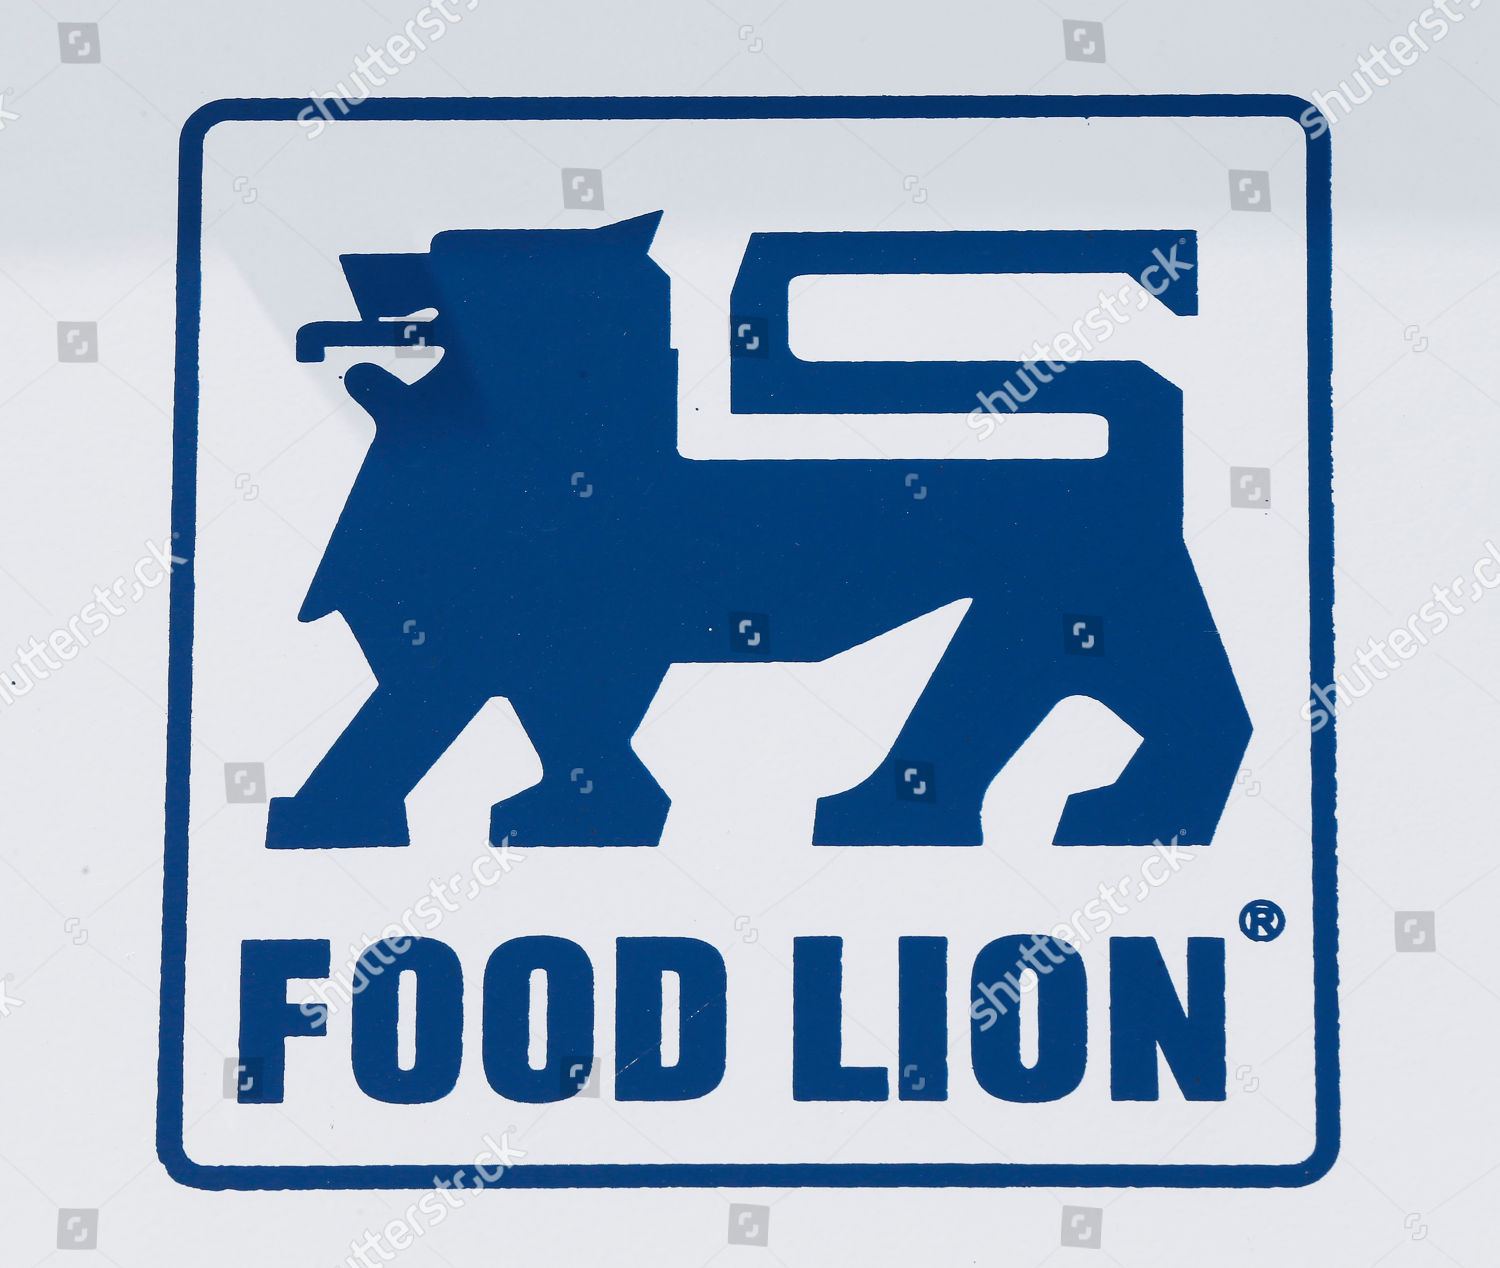 Food Lion grocery store logo on display Editorial Stock